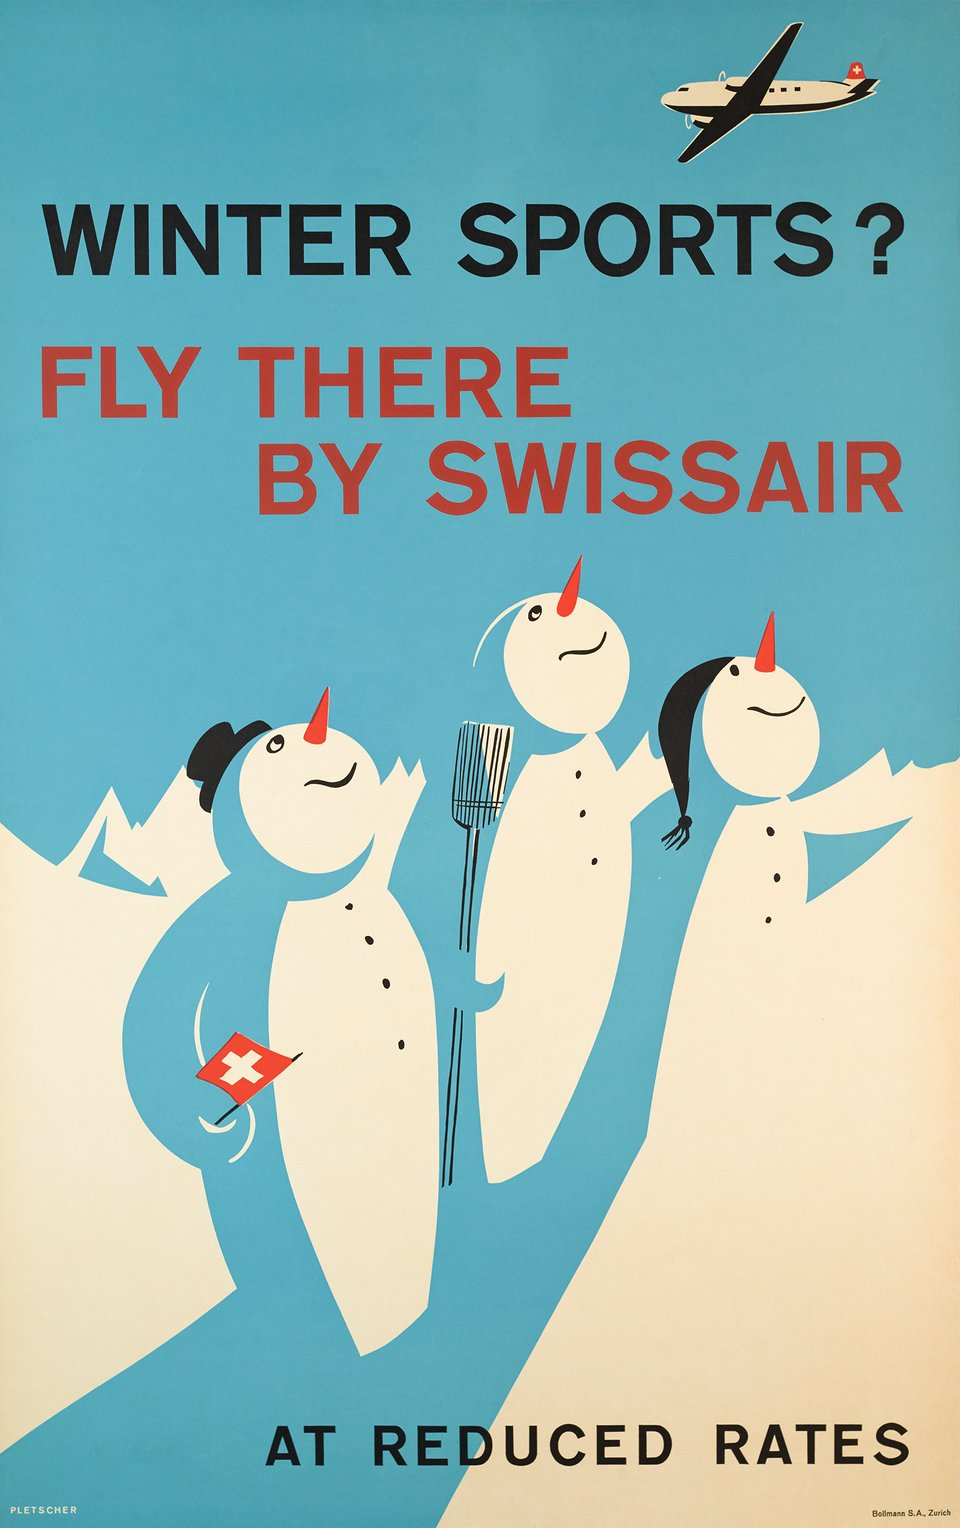 Winter Sports, Fly there by Swissair, At reduced rates – Affiche ancienne – Fredy PLETSCHER – 1953